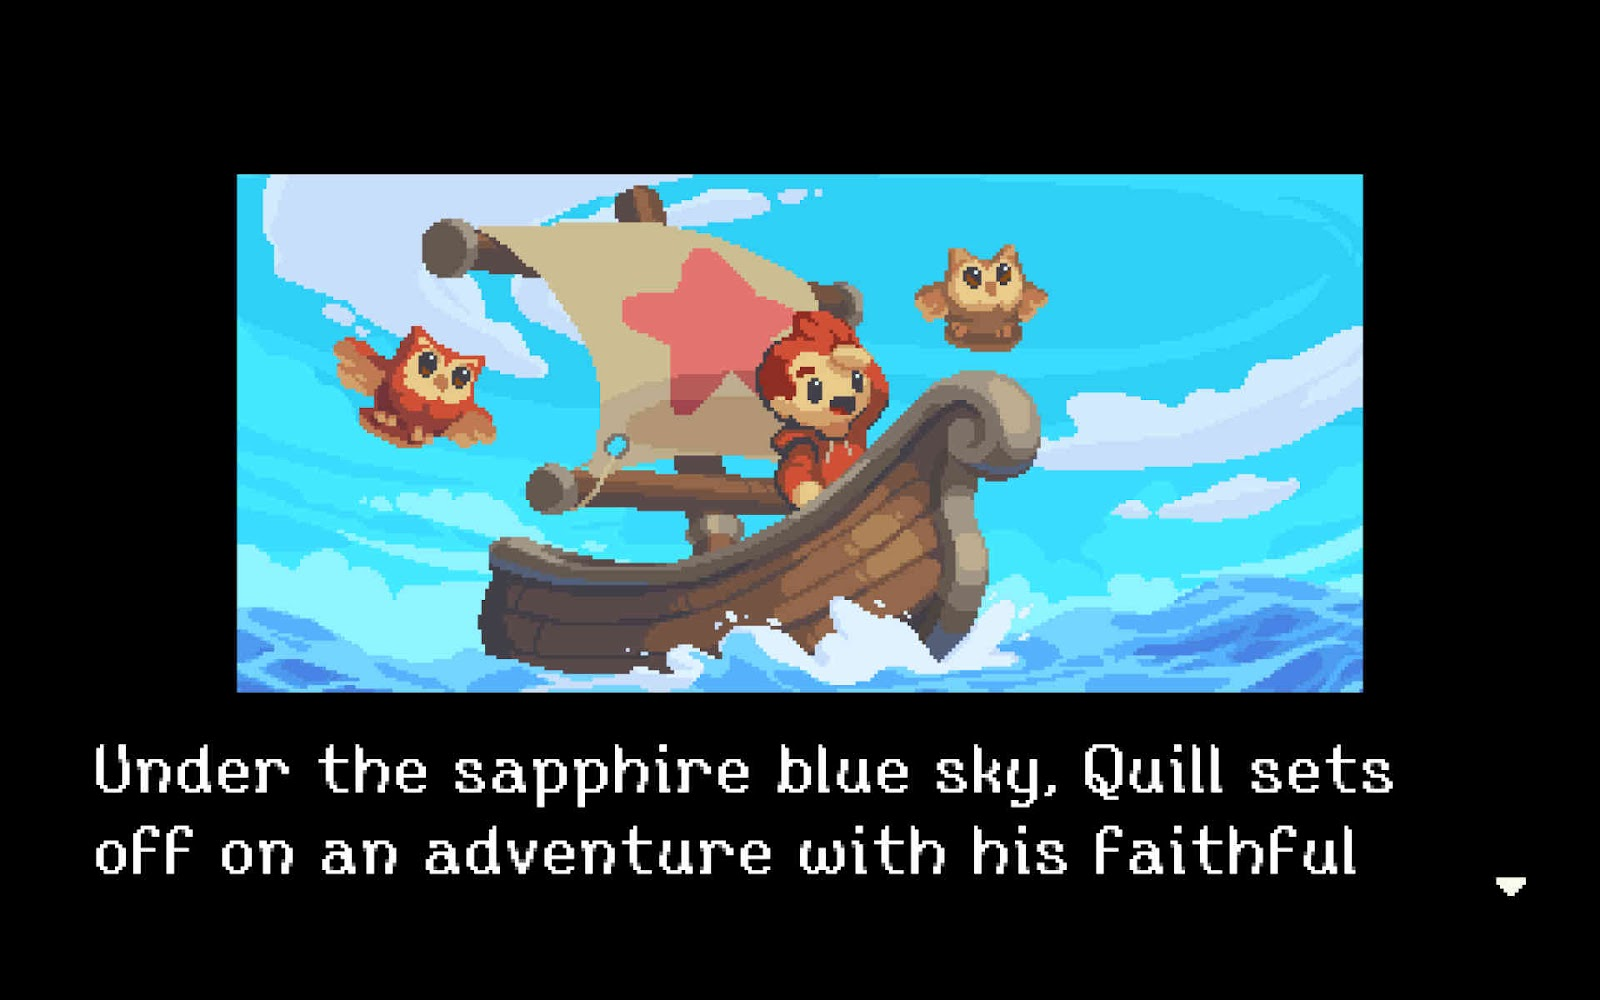 Quill, the main character sailing in a boat accompanied by his faithful owls.